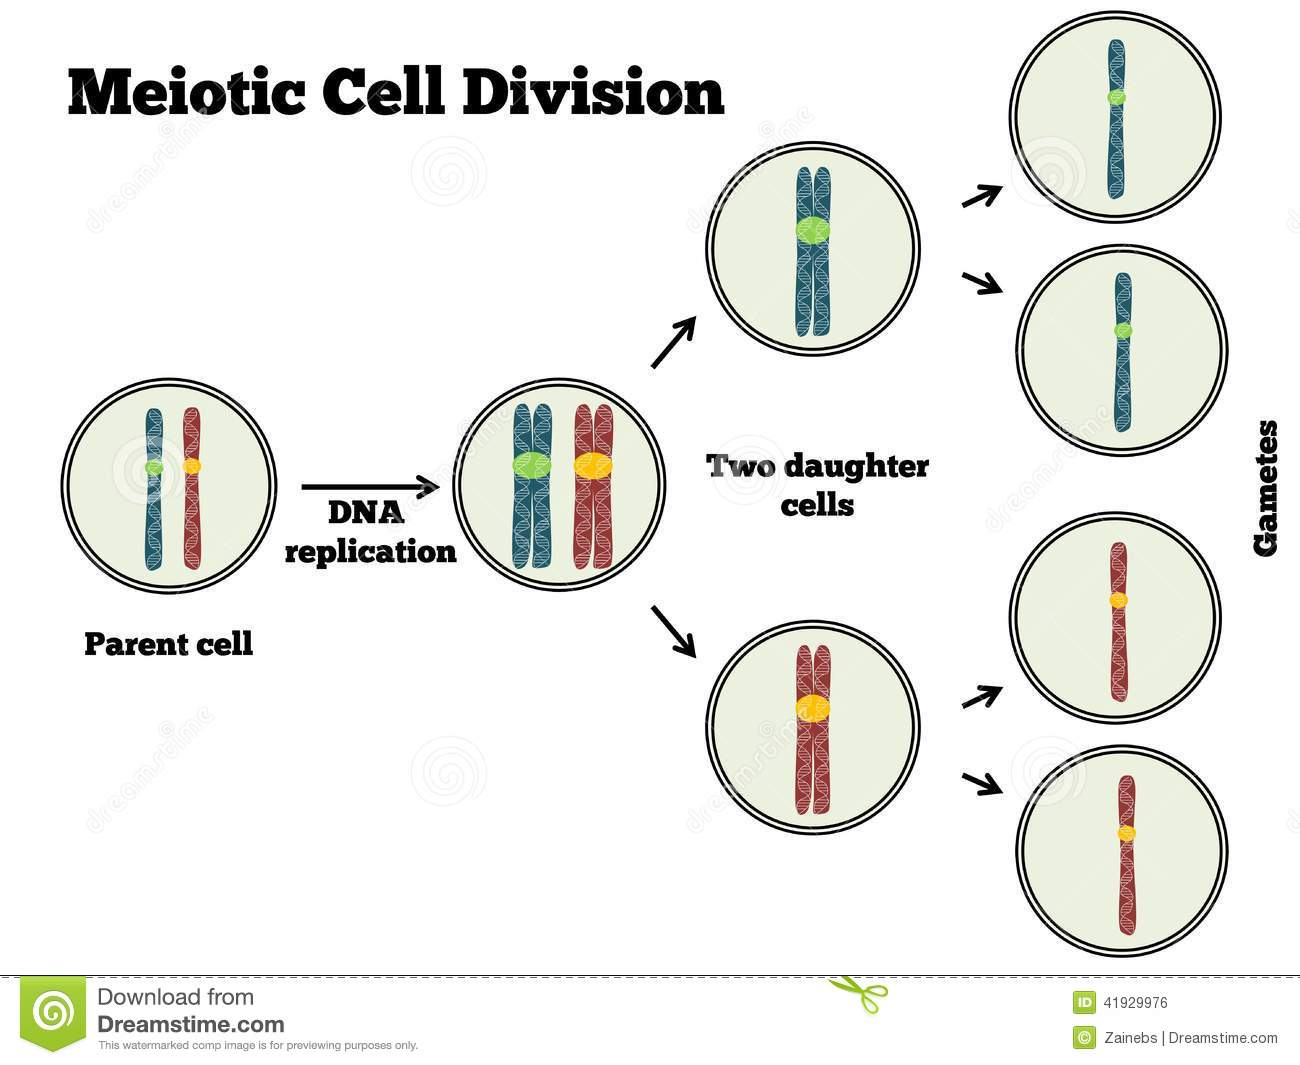 Division Cellulaire De Meotic Illustration De Vecteur